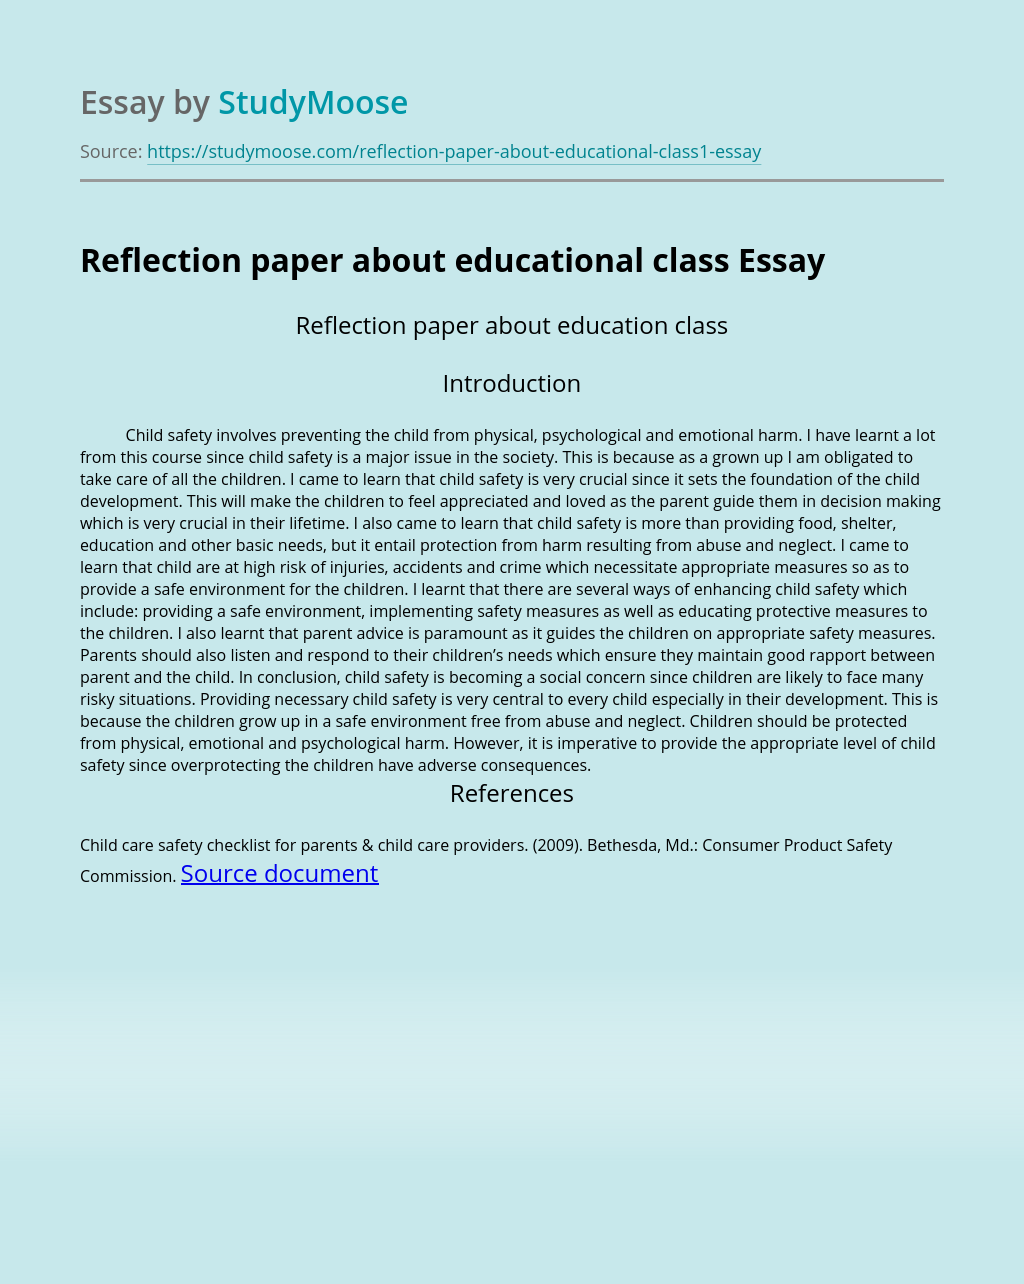 Reflection paper about educational class